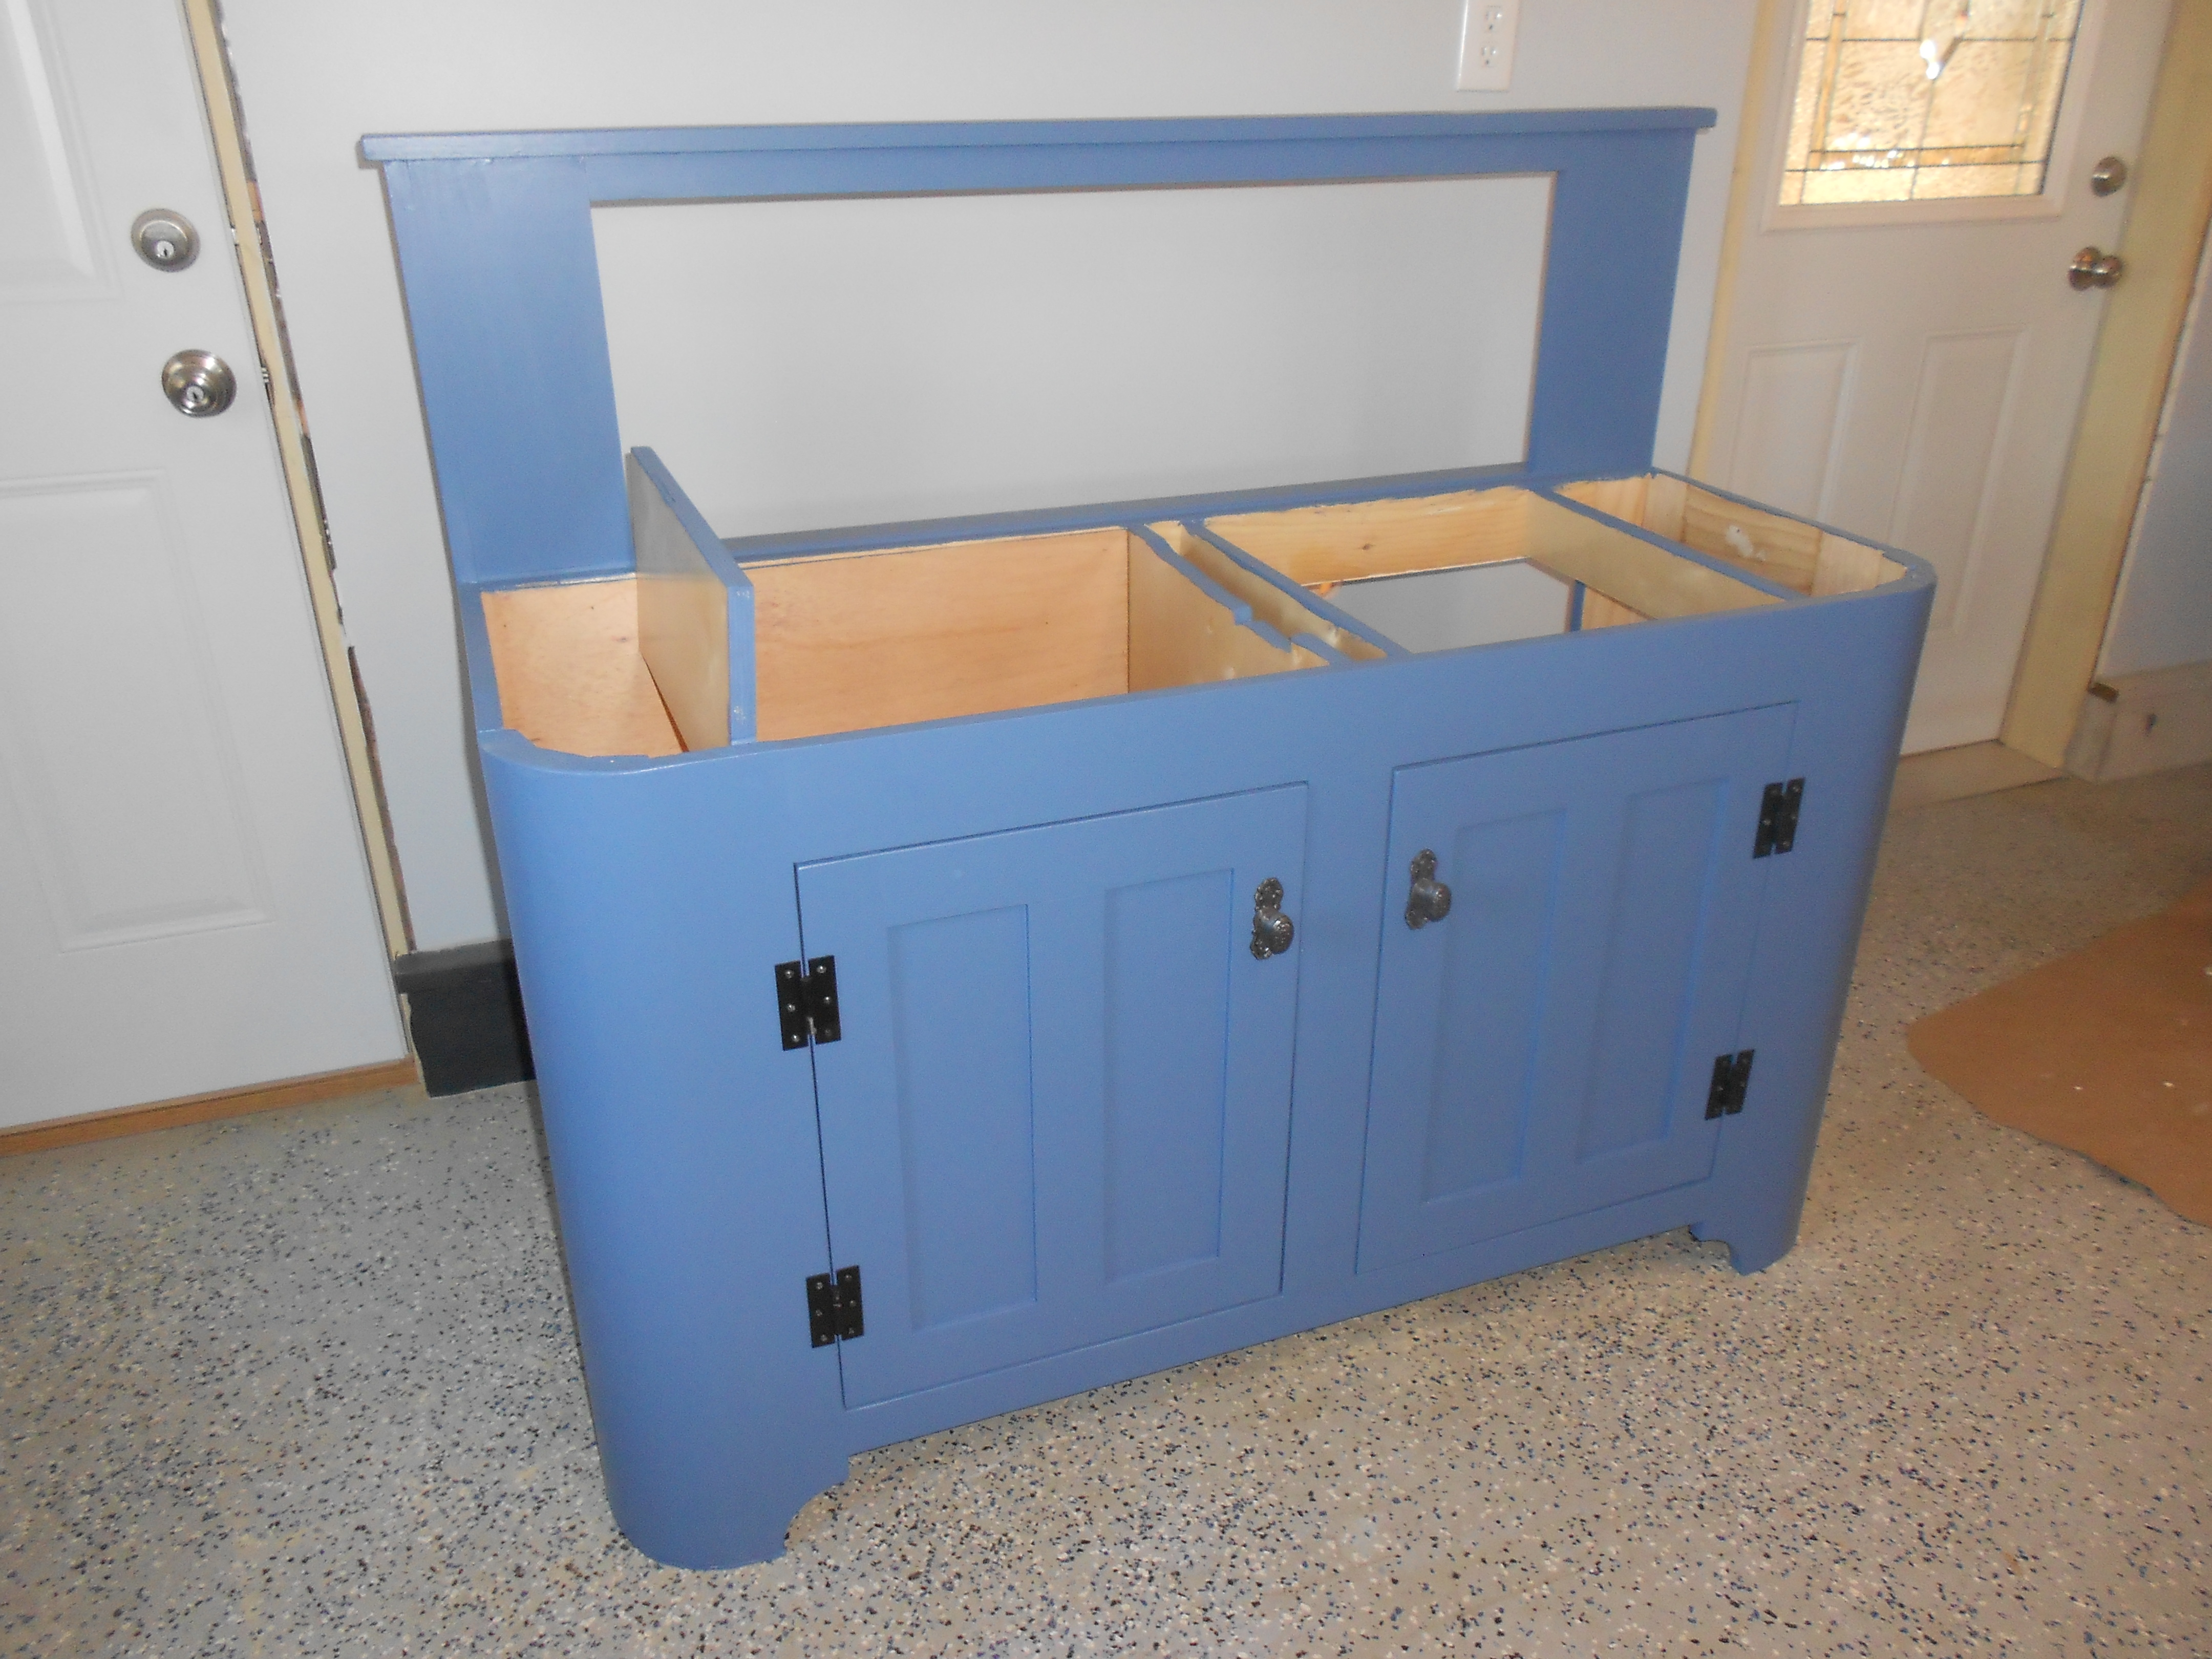 Ana White | Drainboard Sink Cabinet with Round Corners - DIY Projects